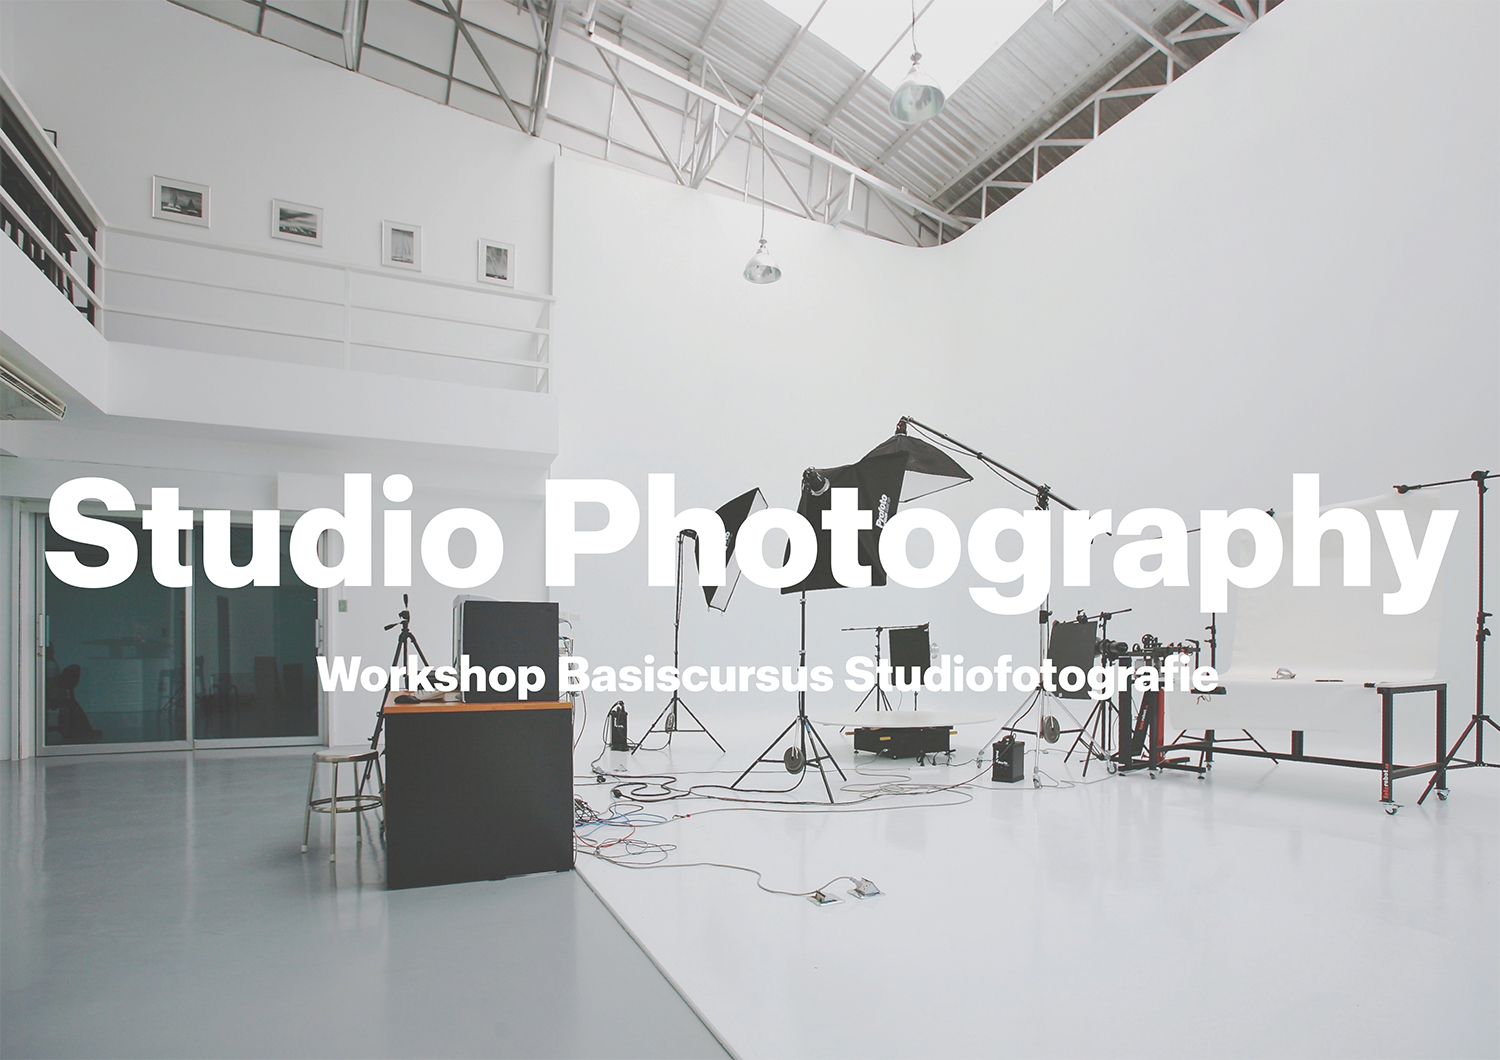 workshop-studio-fotografie.jpg